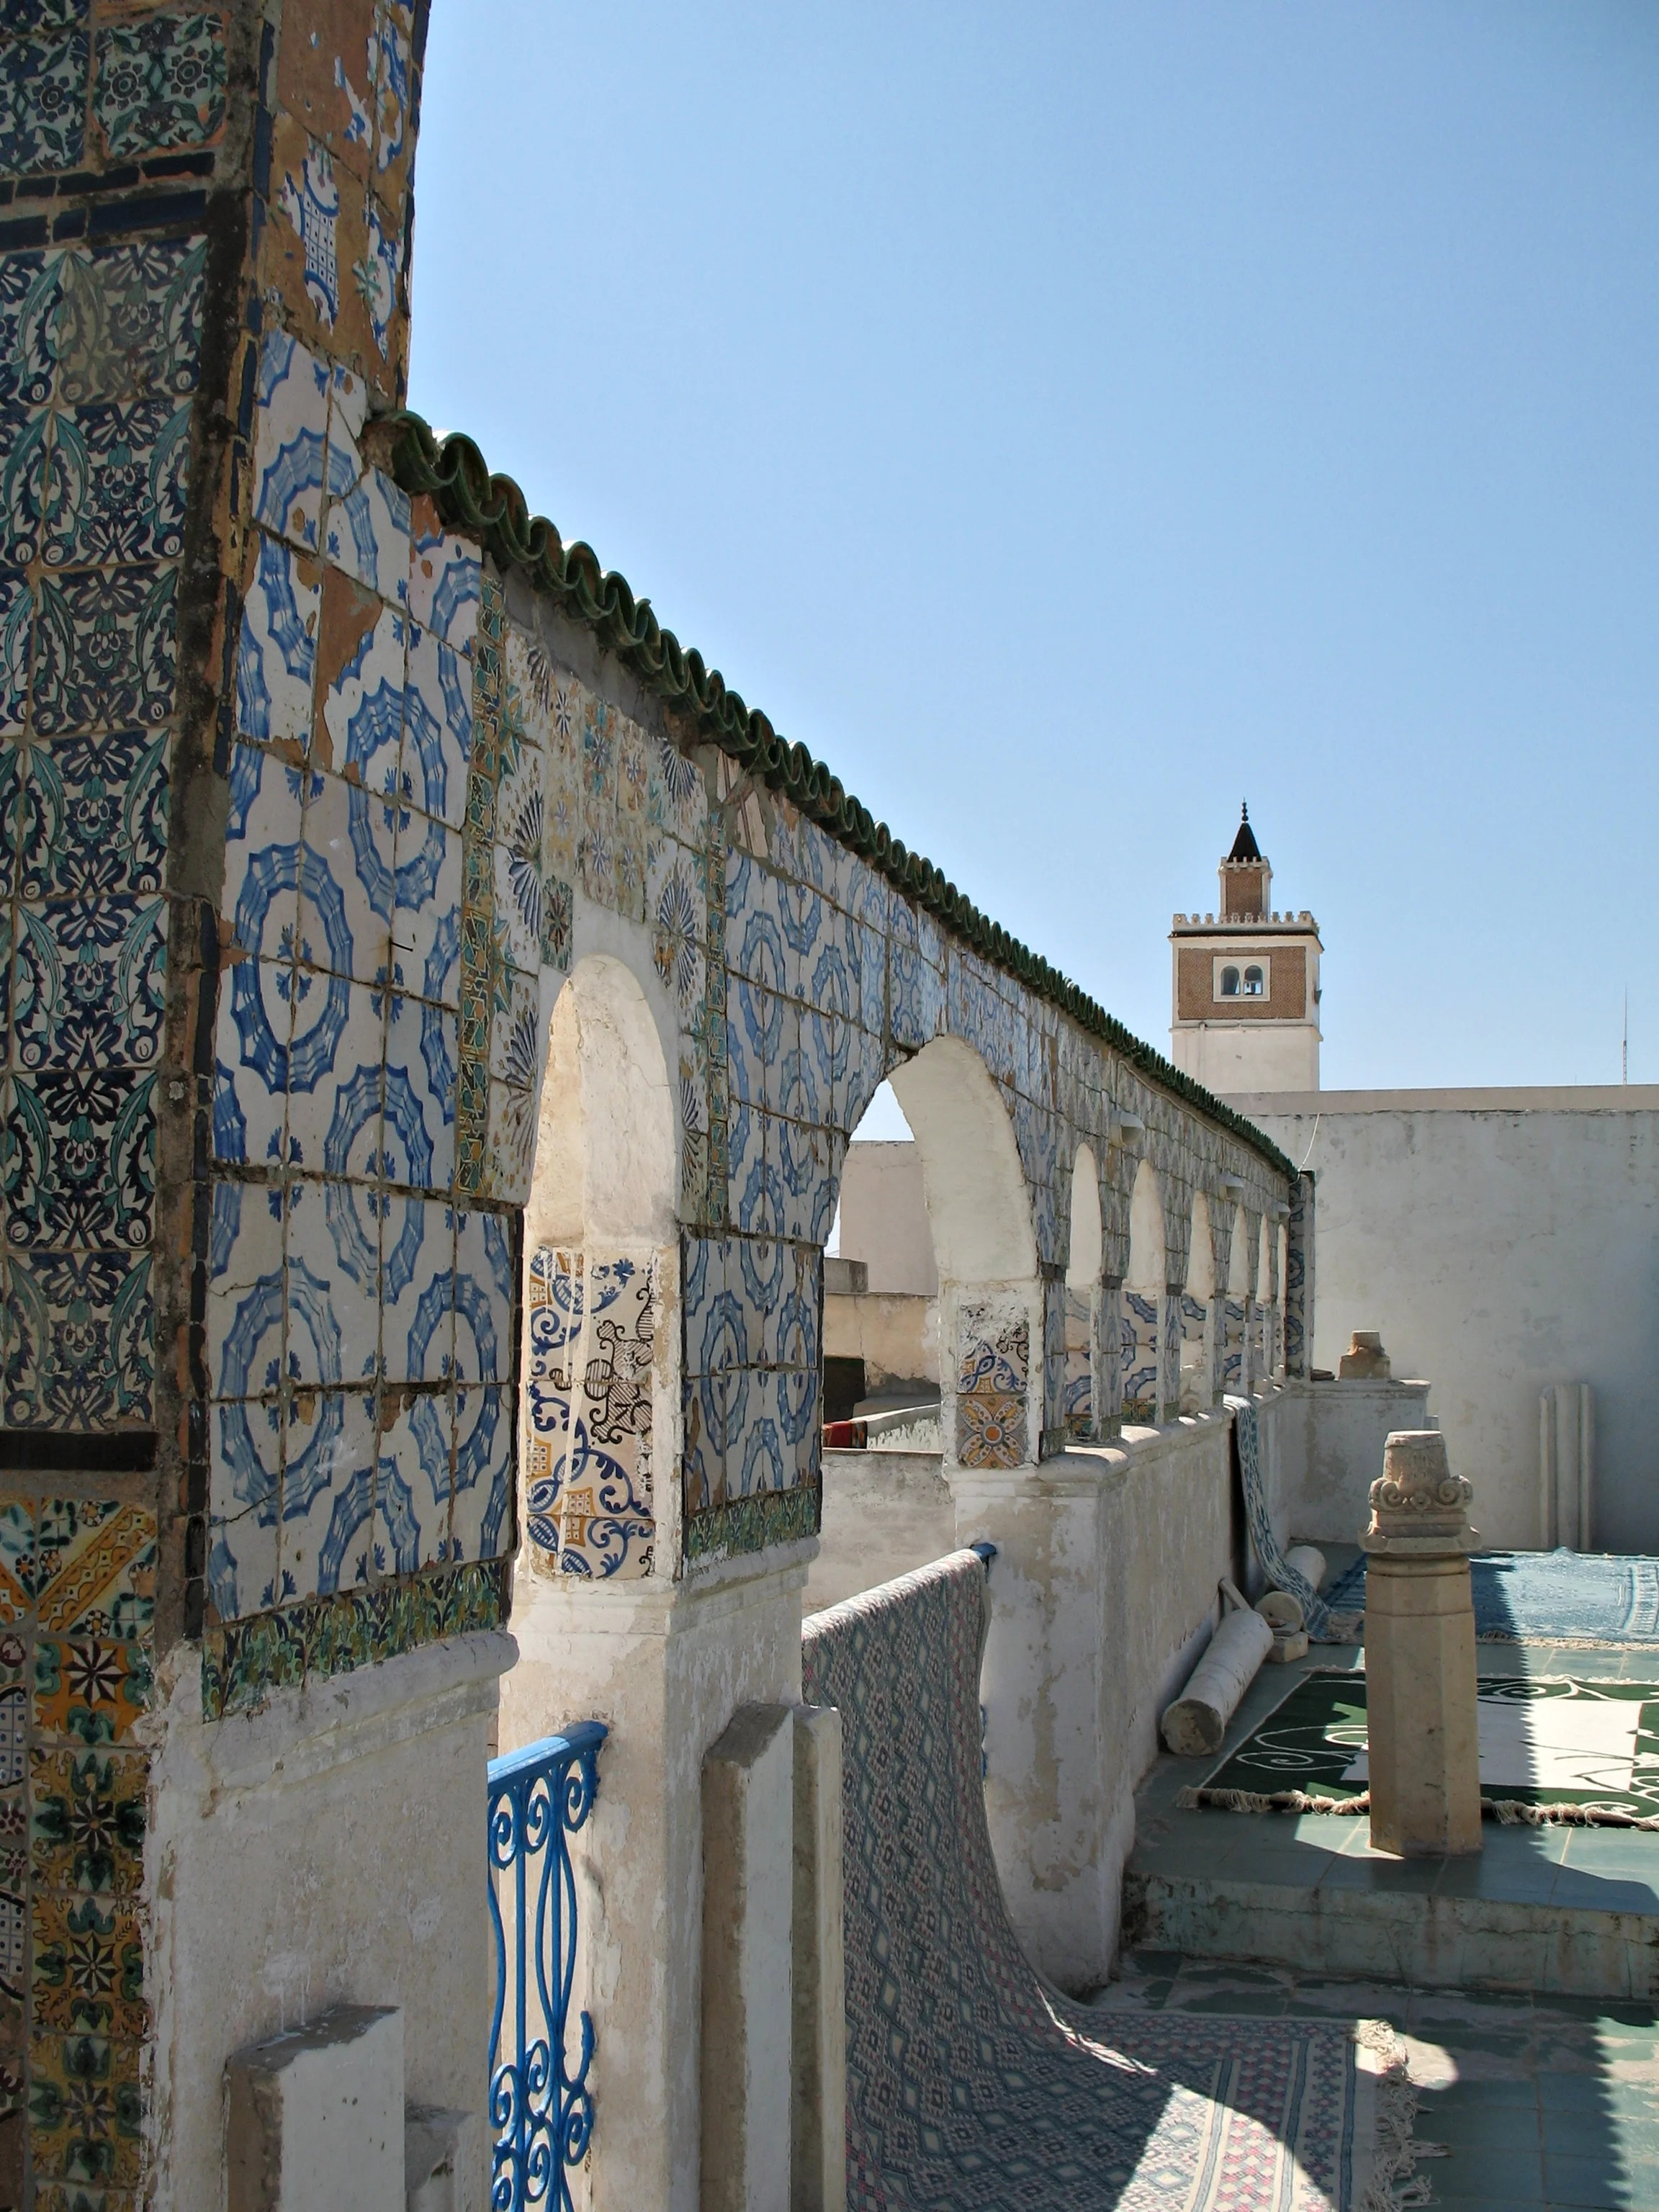 La Chambre Bleu Tunis Roofs Of The Medina Of Tunis In Tunis 3 Reviews And 14 Photos